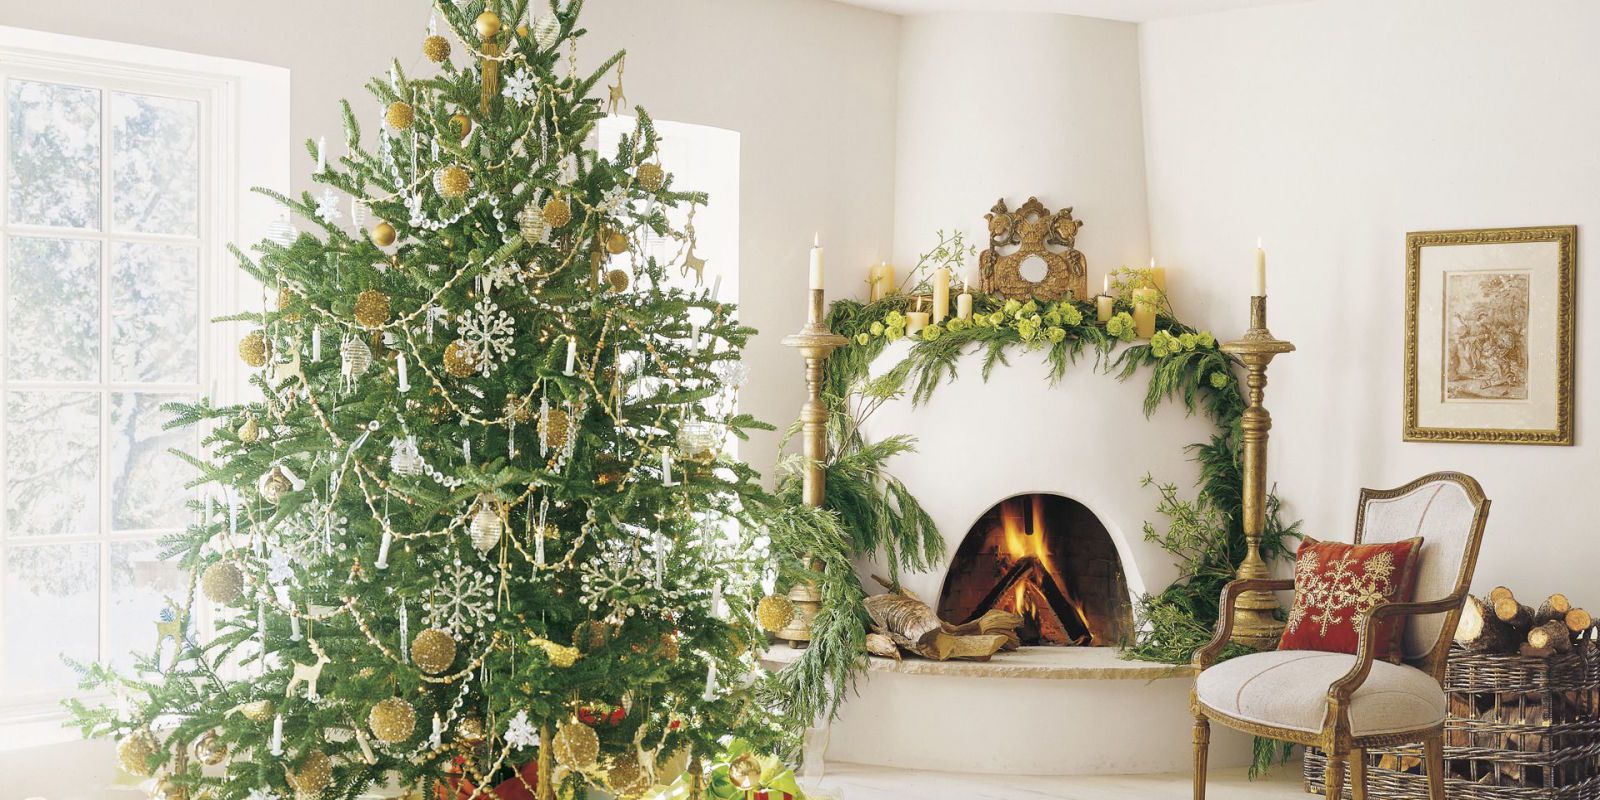 25 Christmas Decoration Ideas - Christmas Decorating Through Three